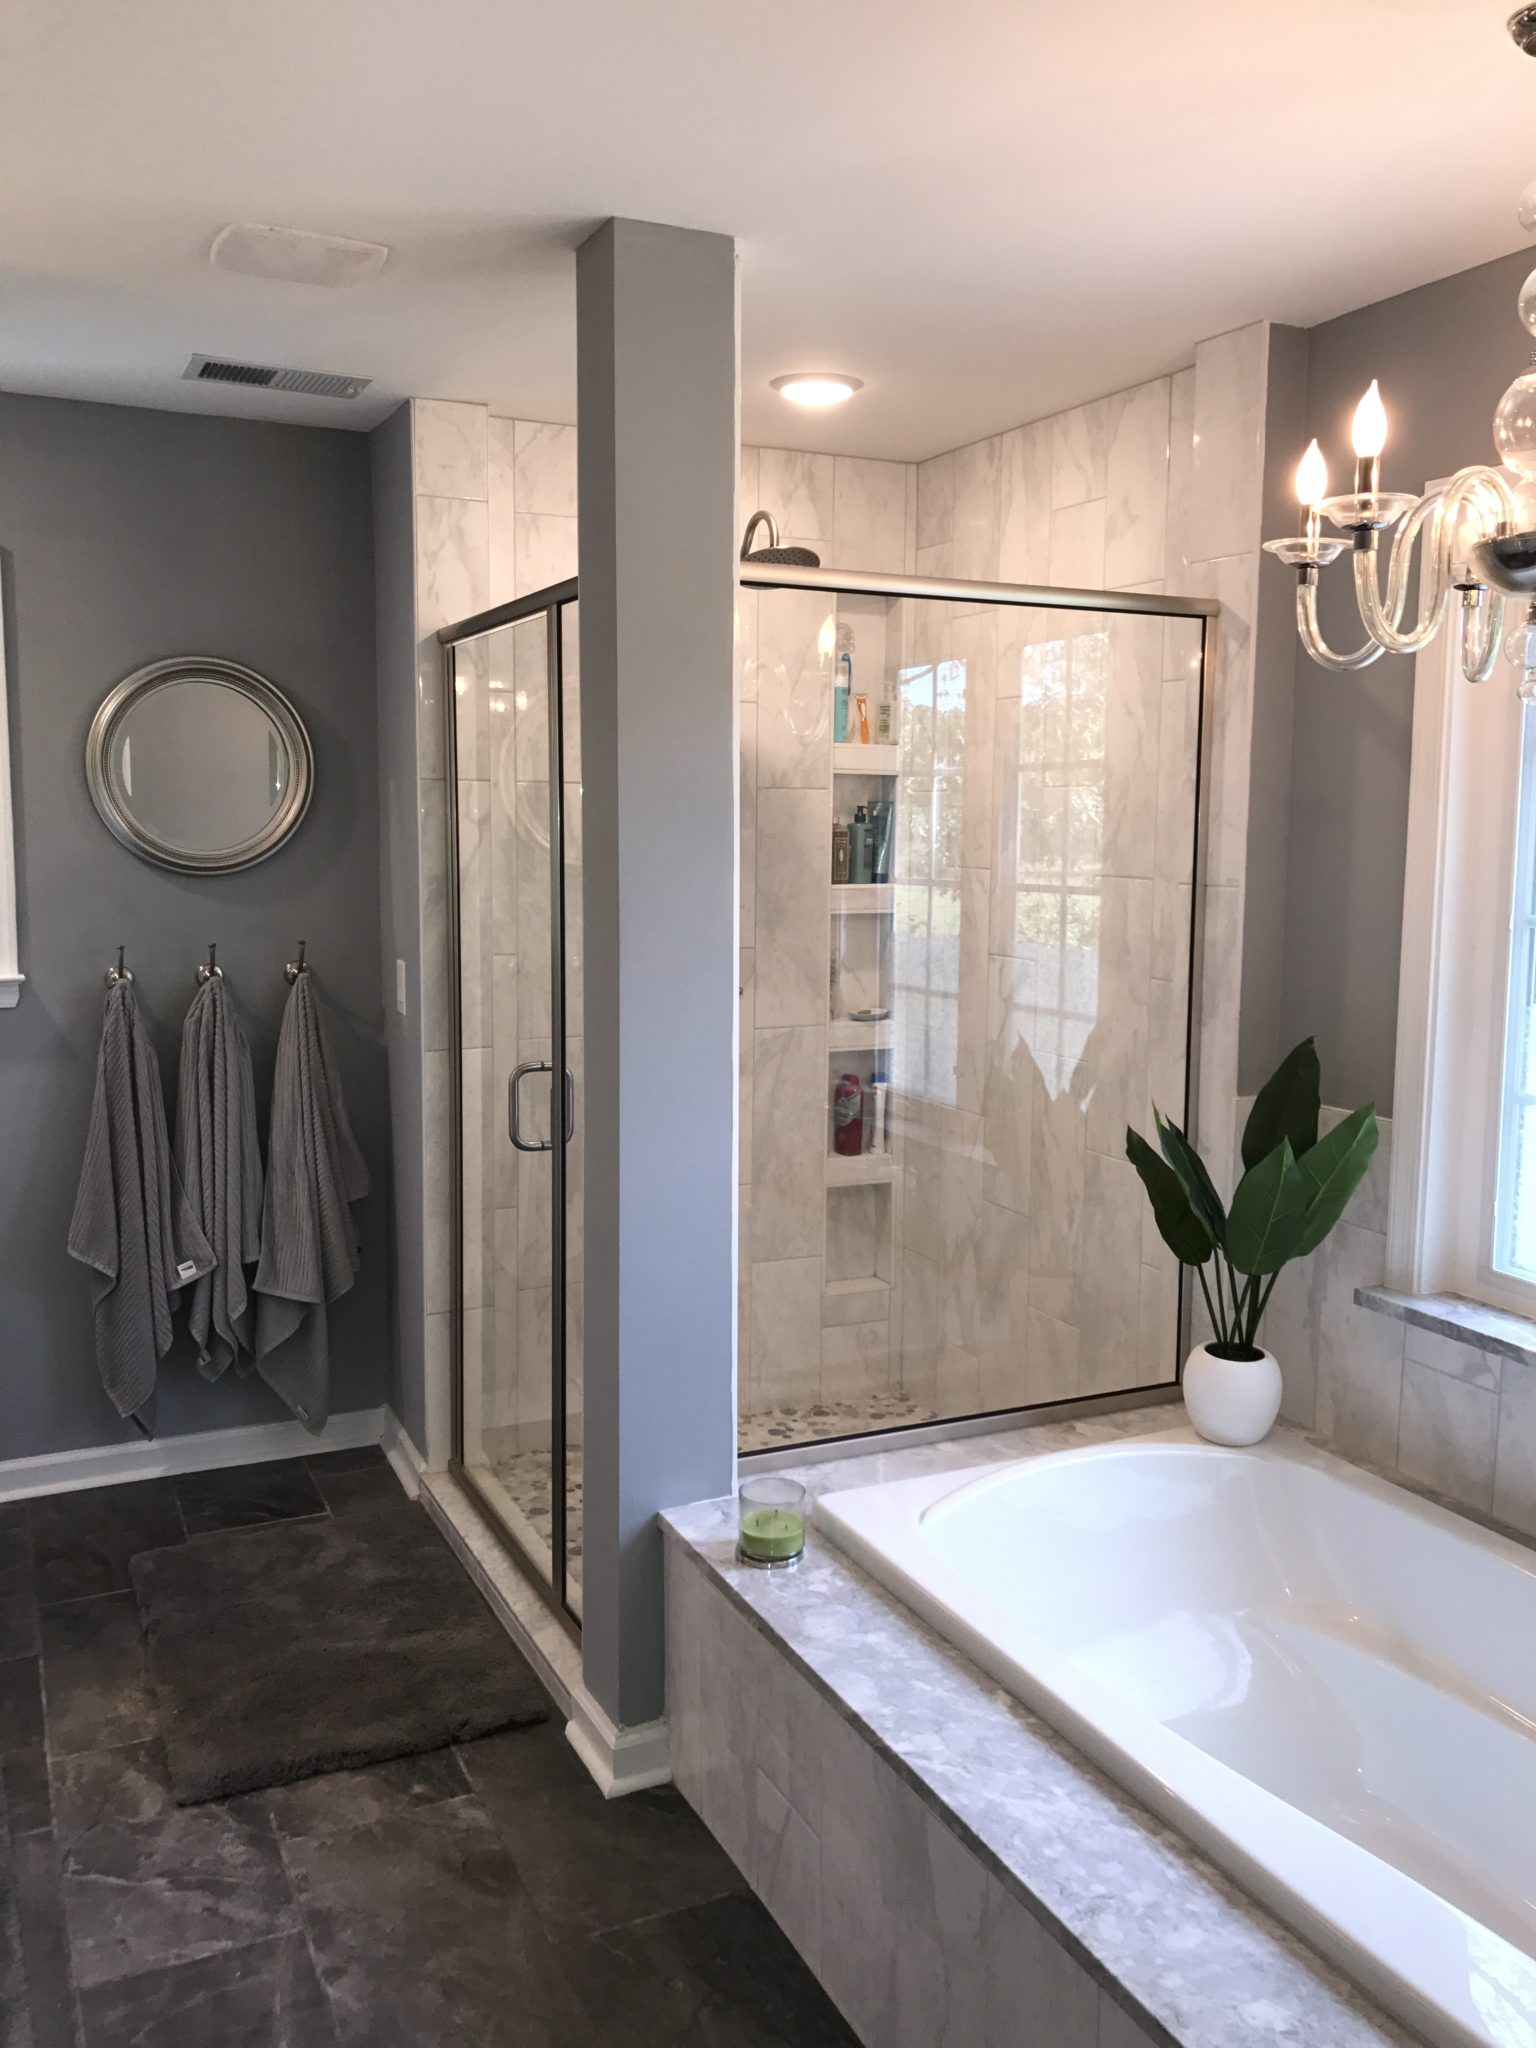 Bathroom Contractors Richmond Va. Over 25 Years General Contracting Experience In The Richmond Area